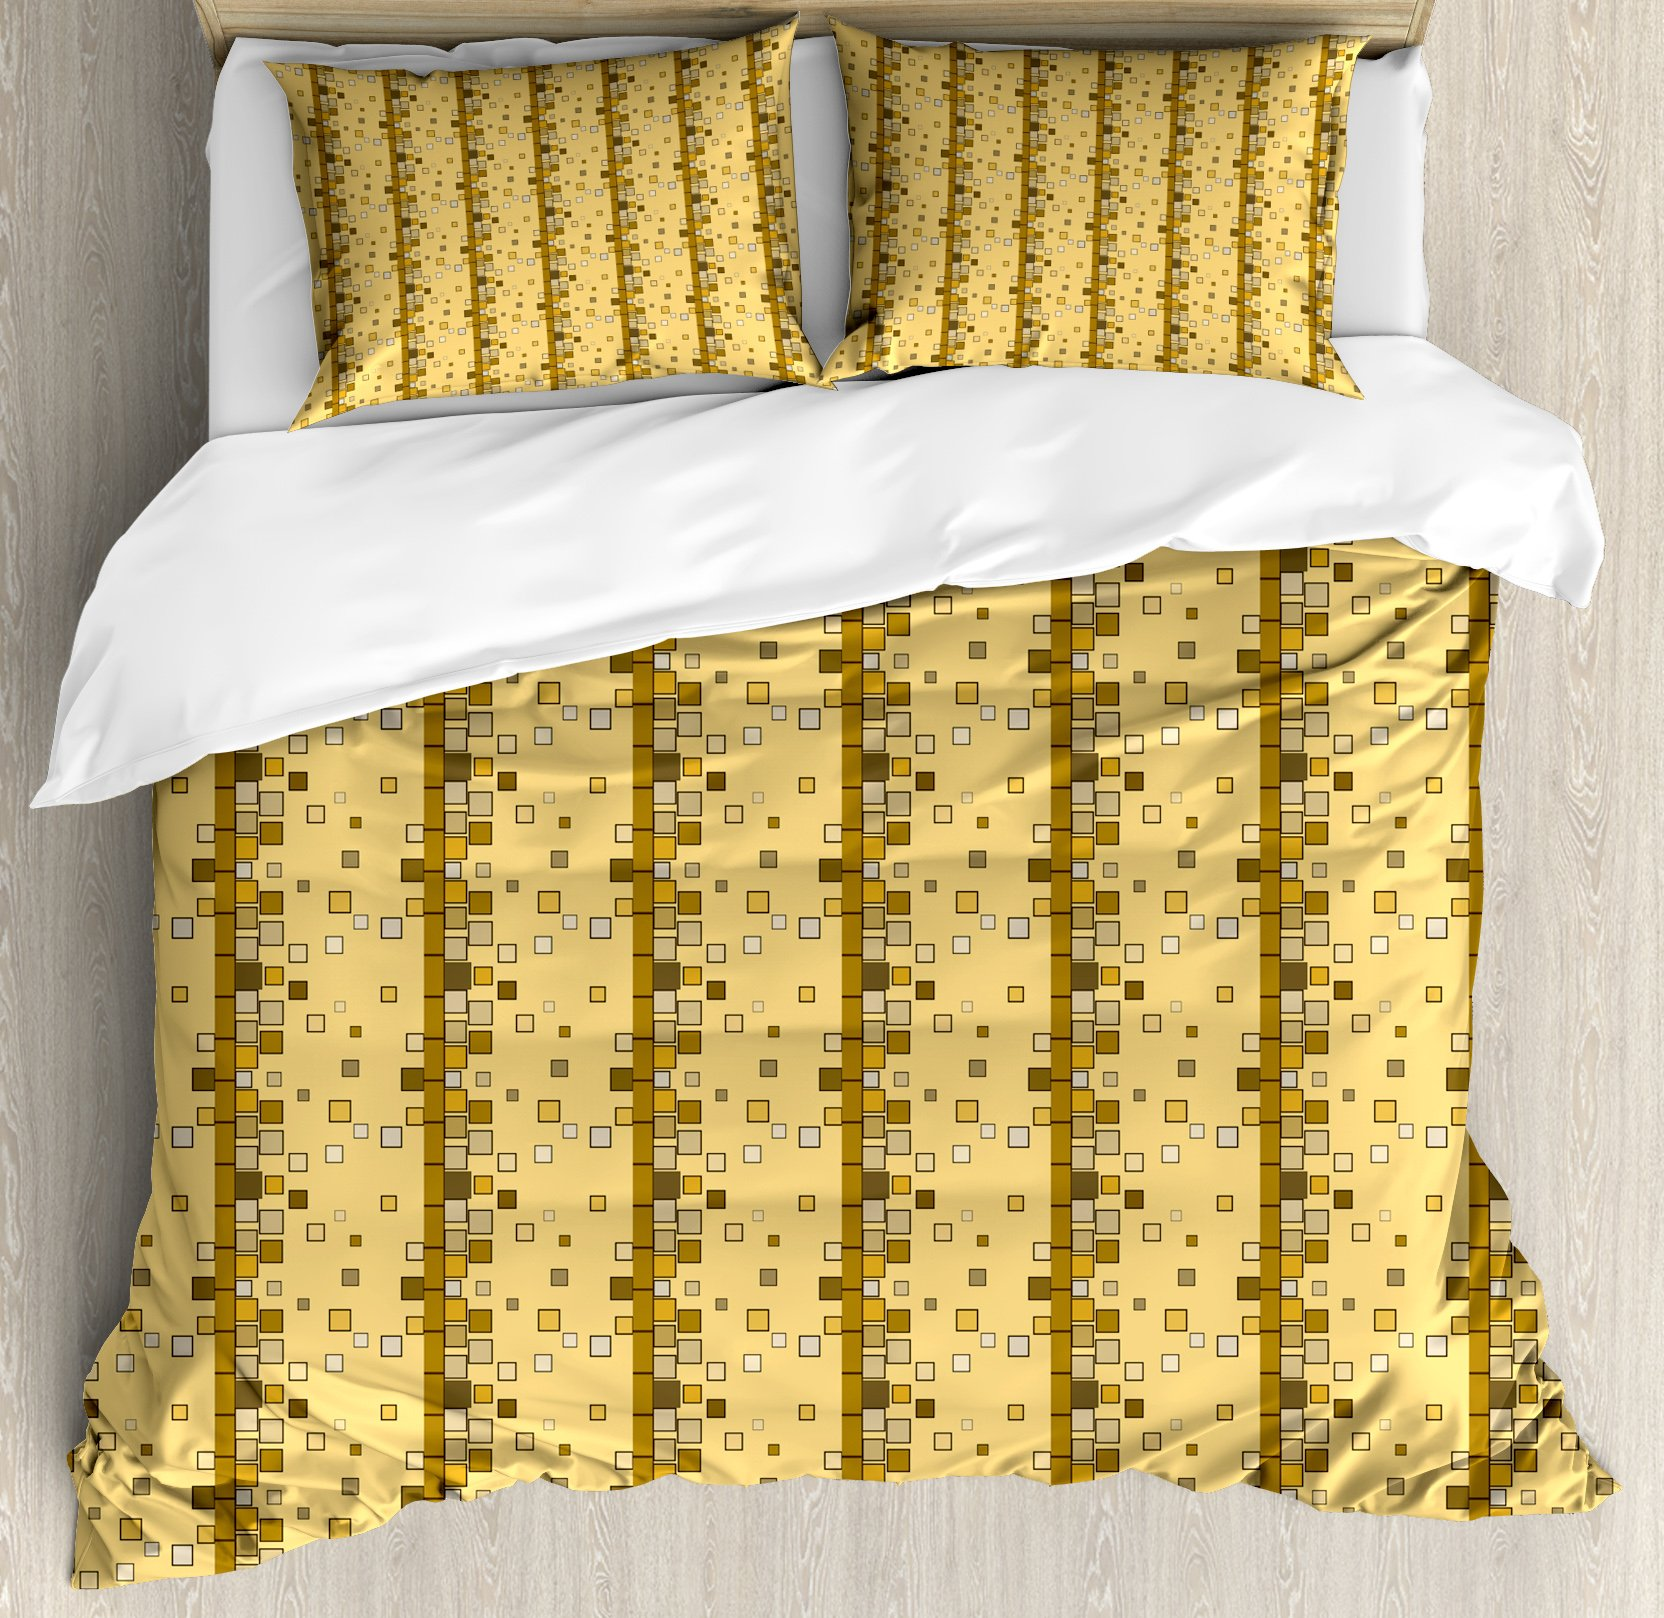 Yellow and Brown Duvet Cover Set Queen Size by Lunarable, Modern Fractal Little Squares Dispersed in Geometric Backdrop Video Game, Decorative 3 Piece Bedding Set with 2 Pillow Shams, Pale Coffee